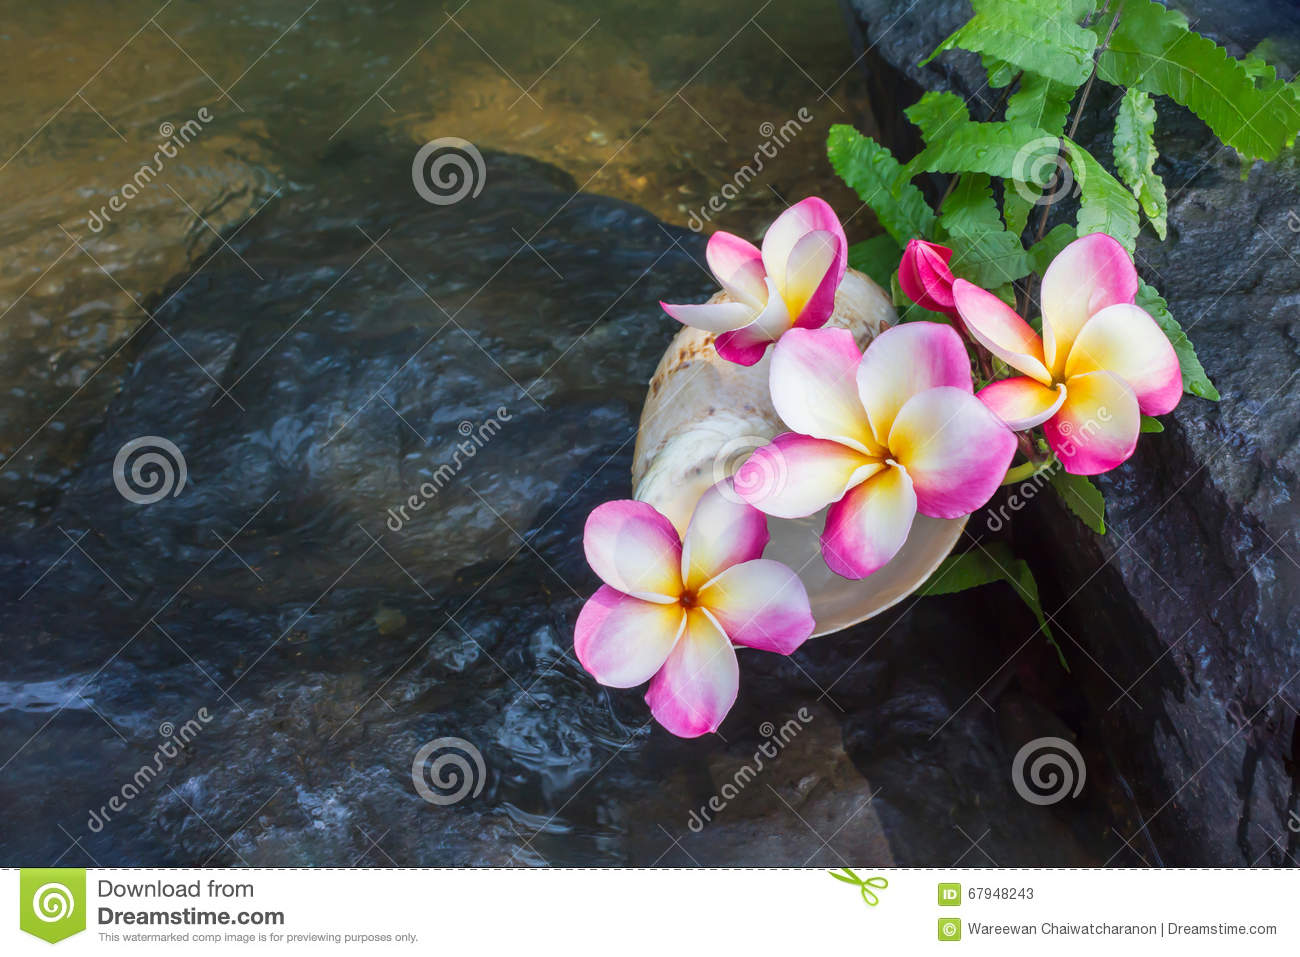 Fiori Con La S.Pink Flowers Frangipani Or Plumeria On The Waterfall Rock With S